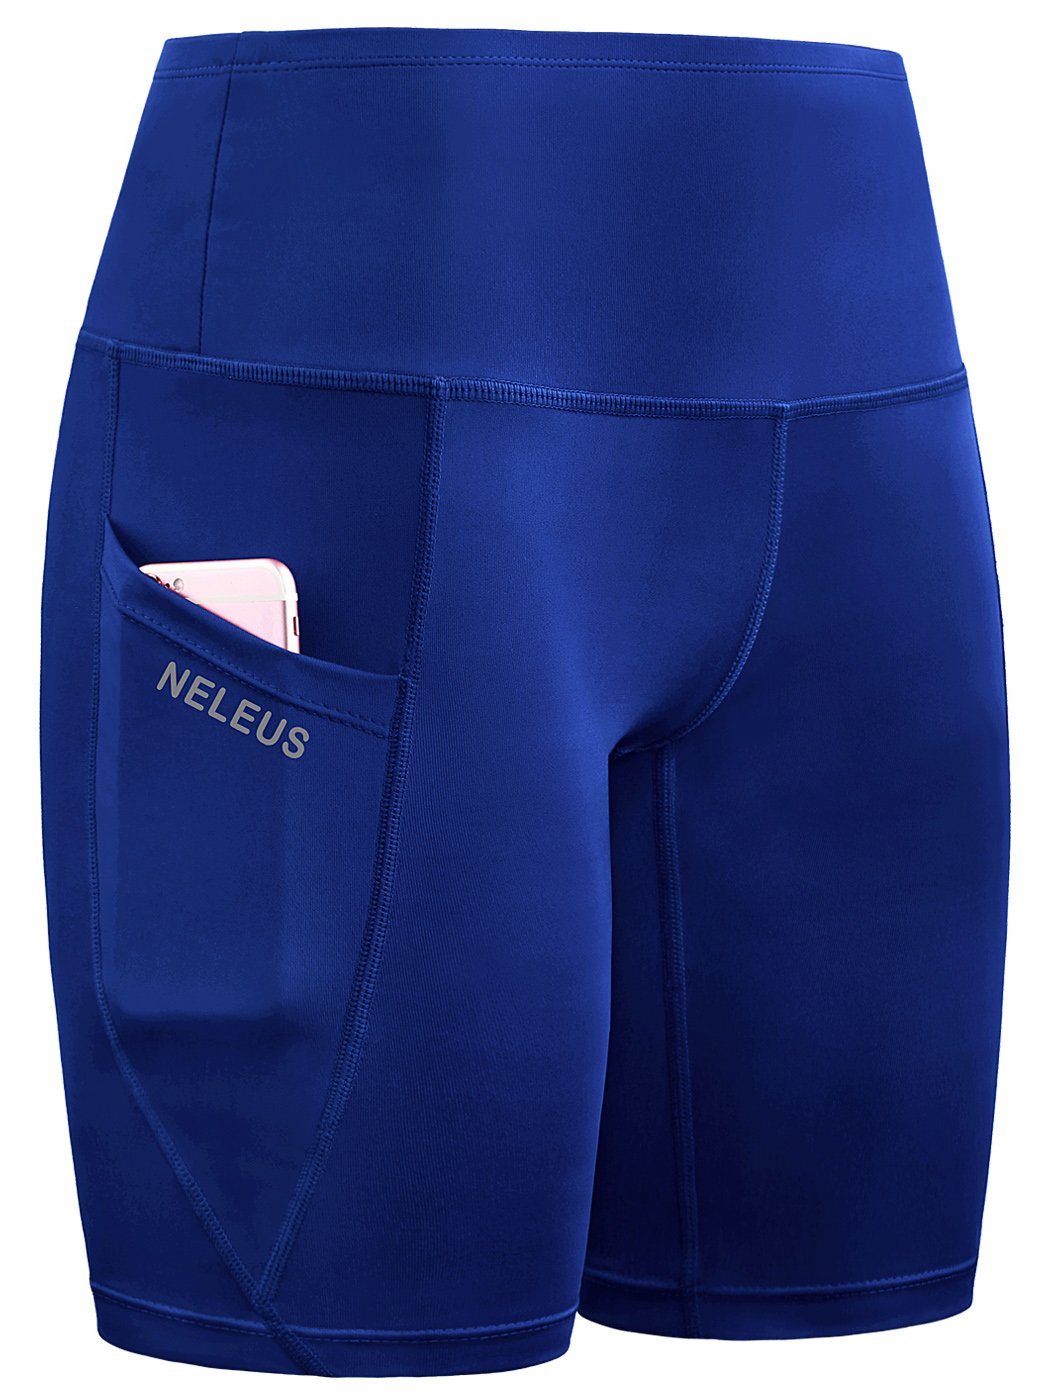 Neleus Women's Workout Running Compression Shorts with Pocket,High Waist,Tummy Control,9032,Pack of 1,Blue,M,EU L